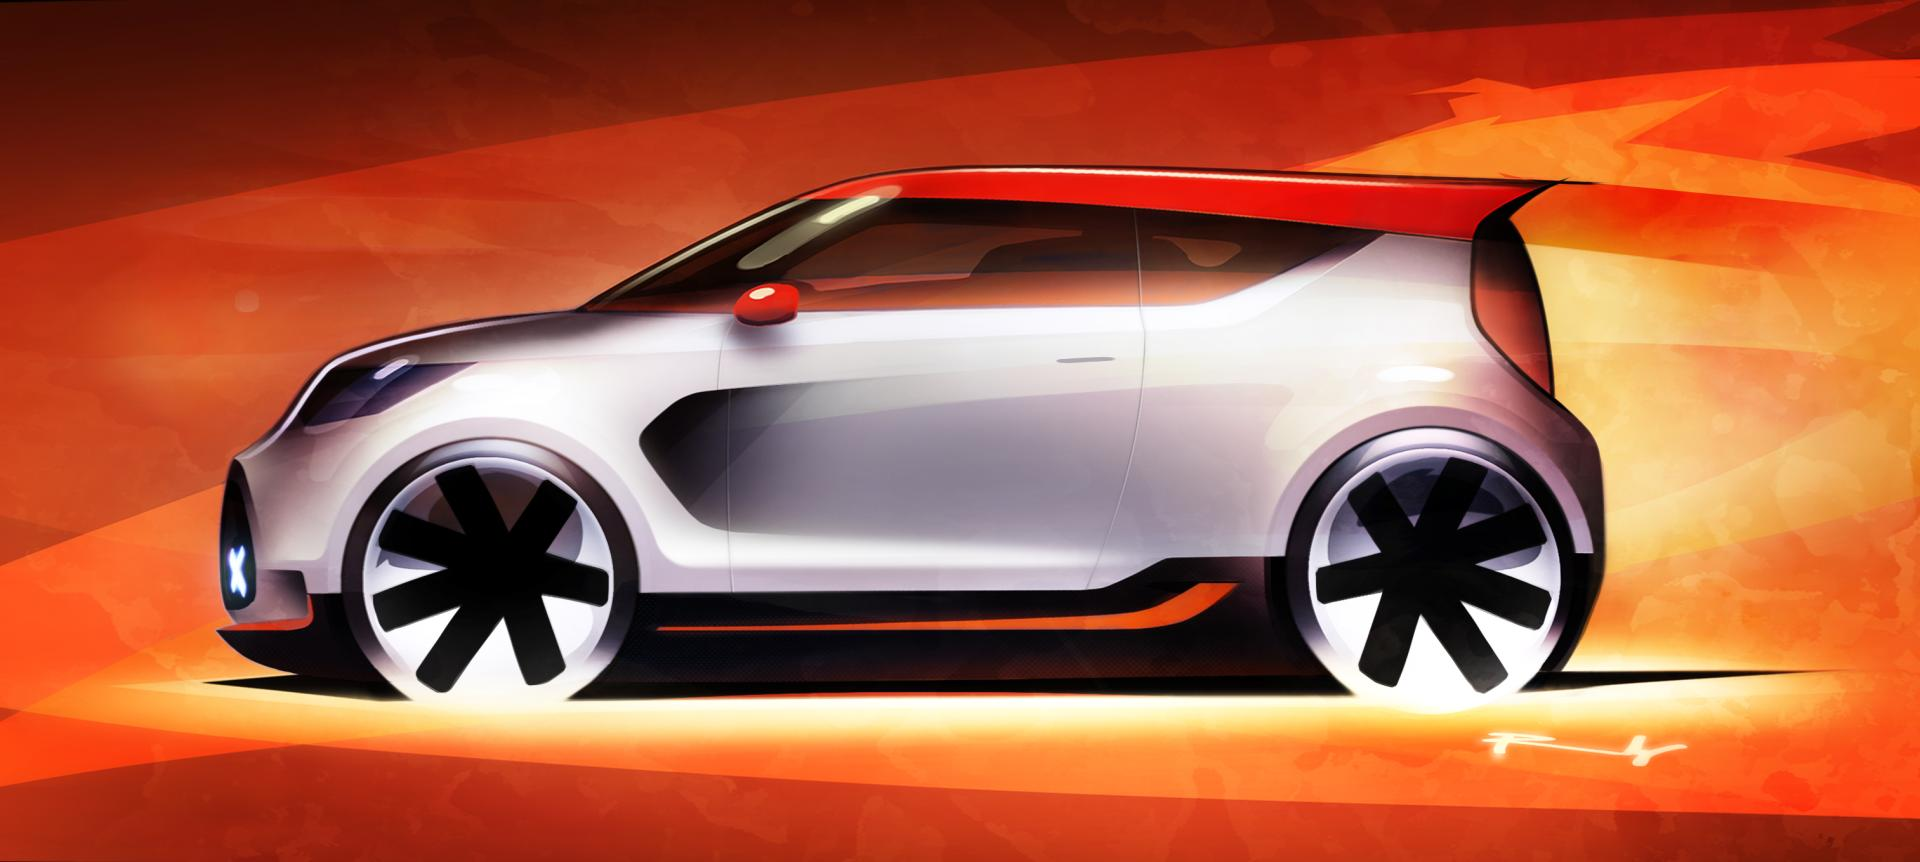 F1 Race 2012 Kia Trackster Concept News And Information, Research